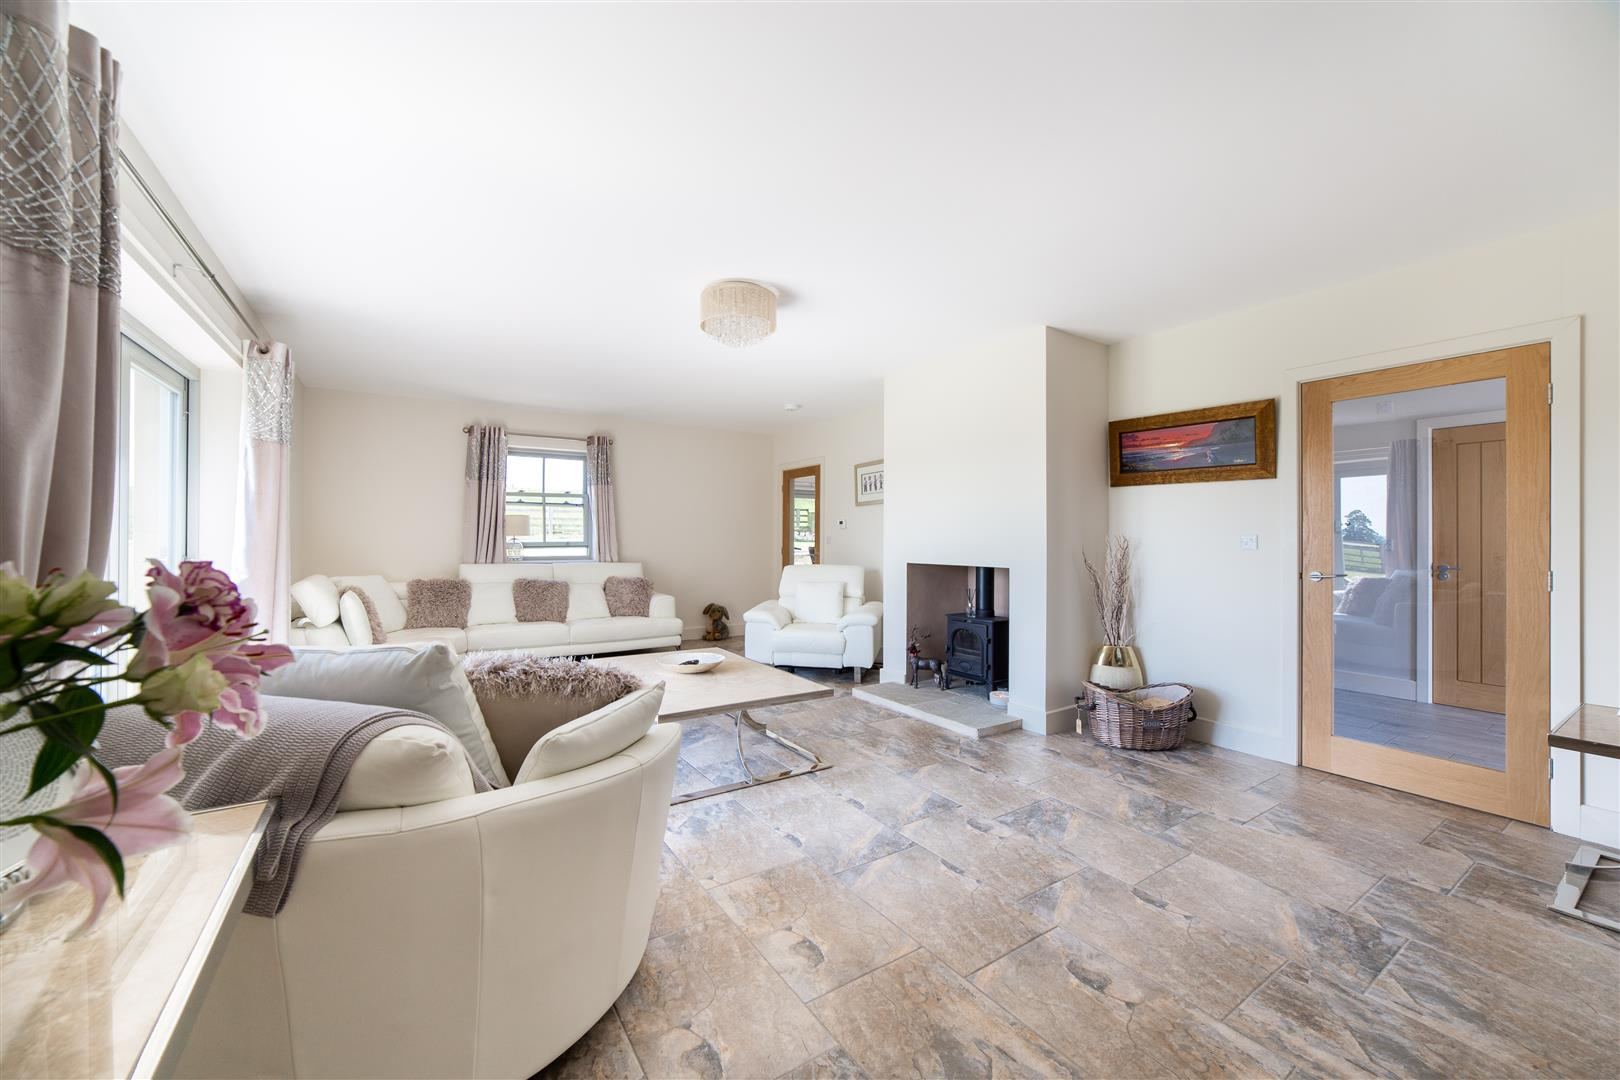 4 bed detached house for sale, Hexham 22